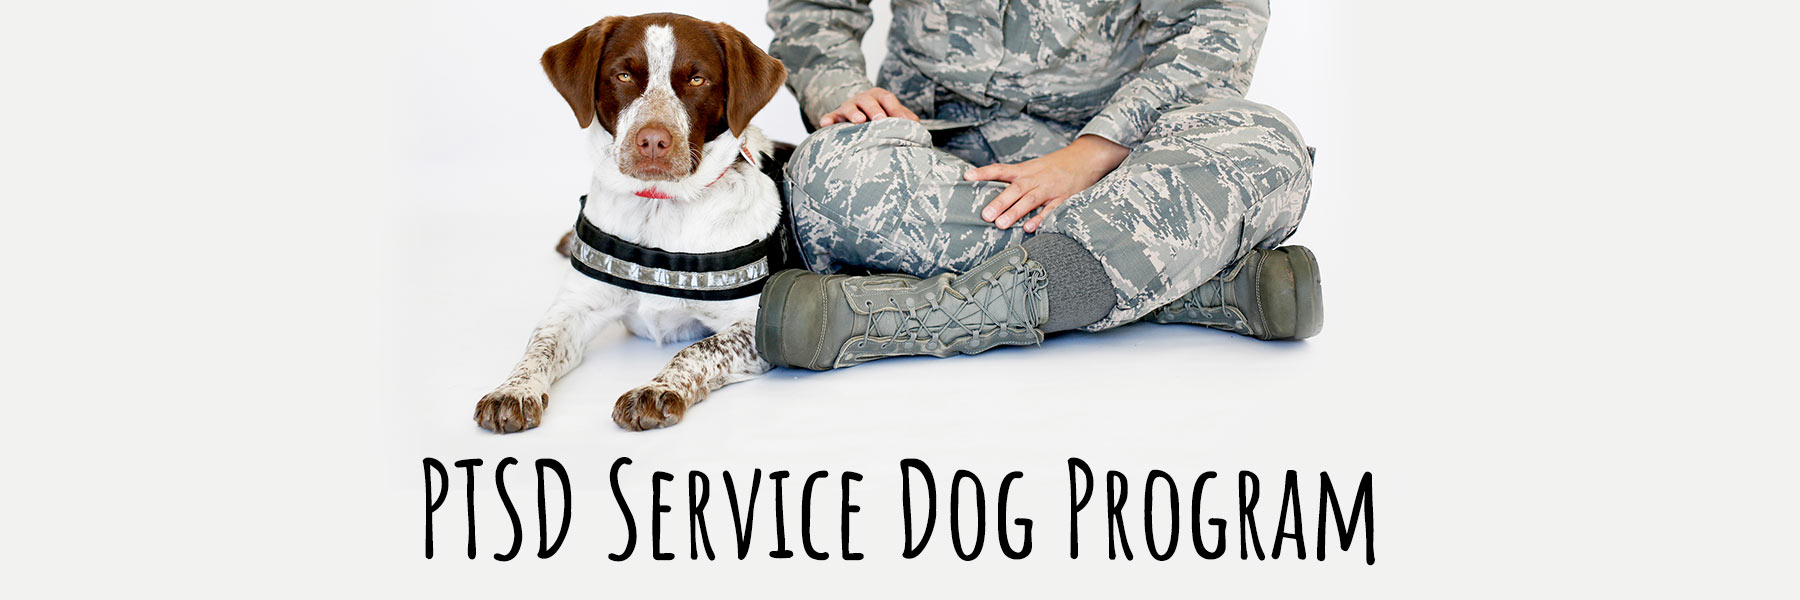 PTSD Service Dog Program